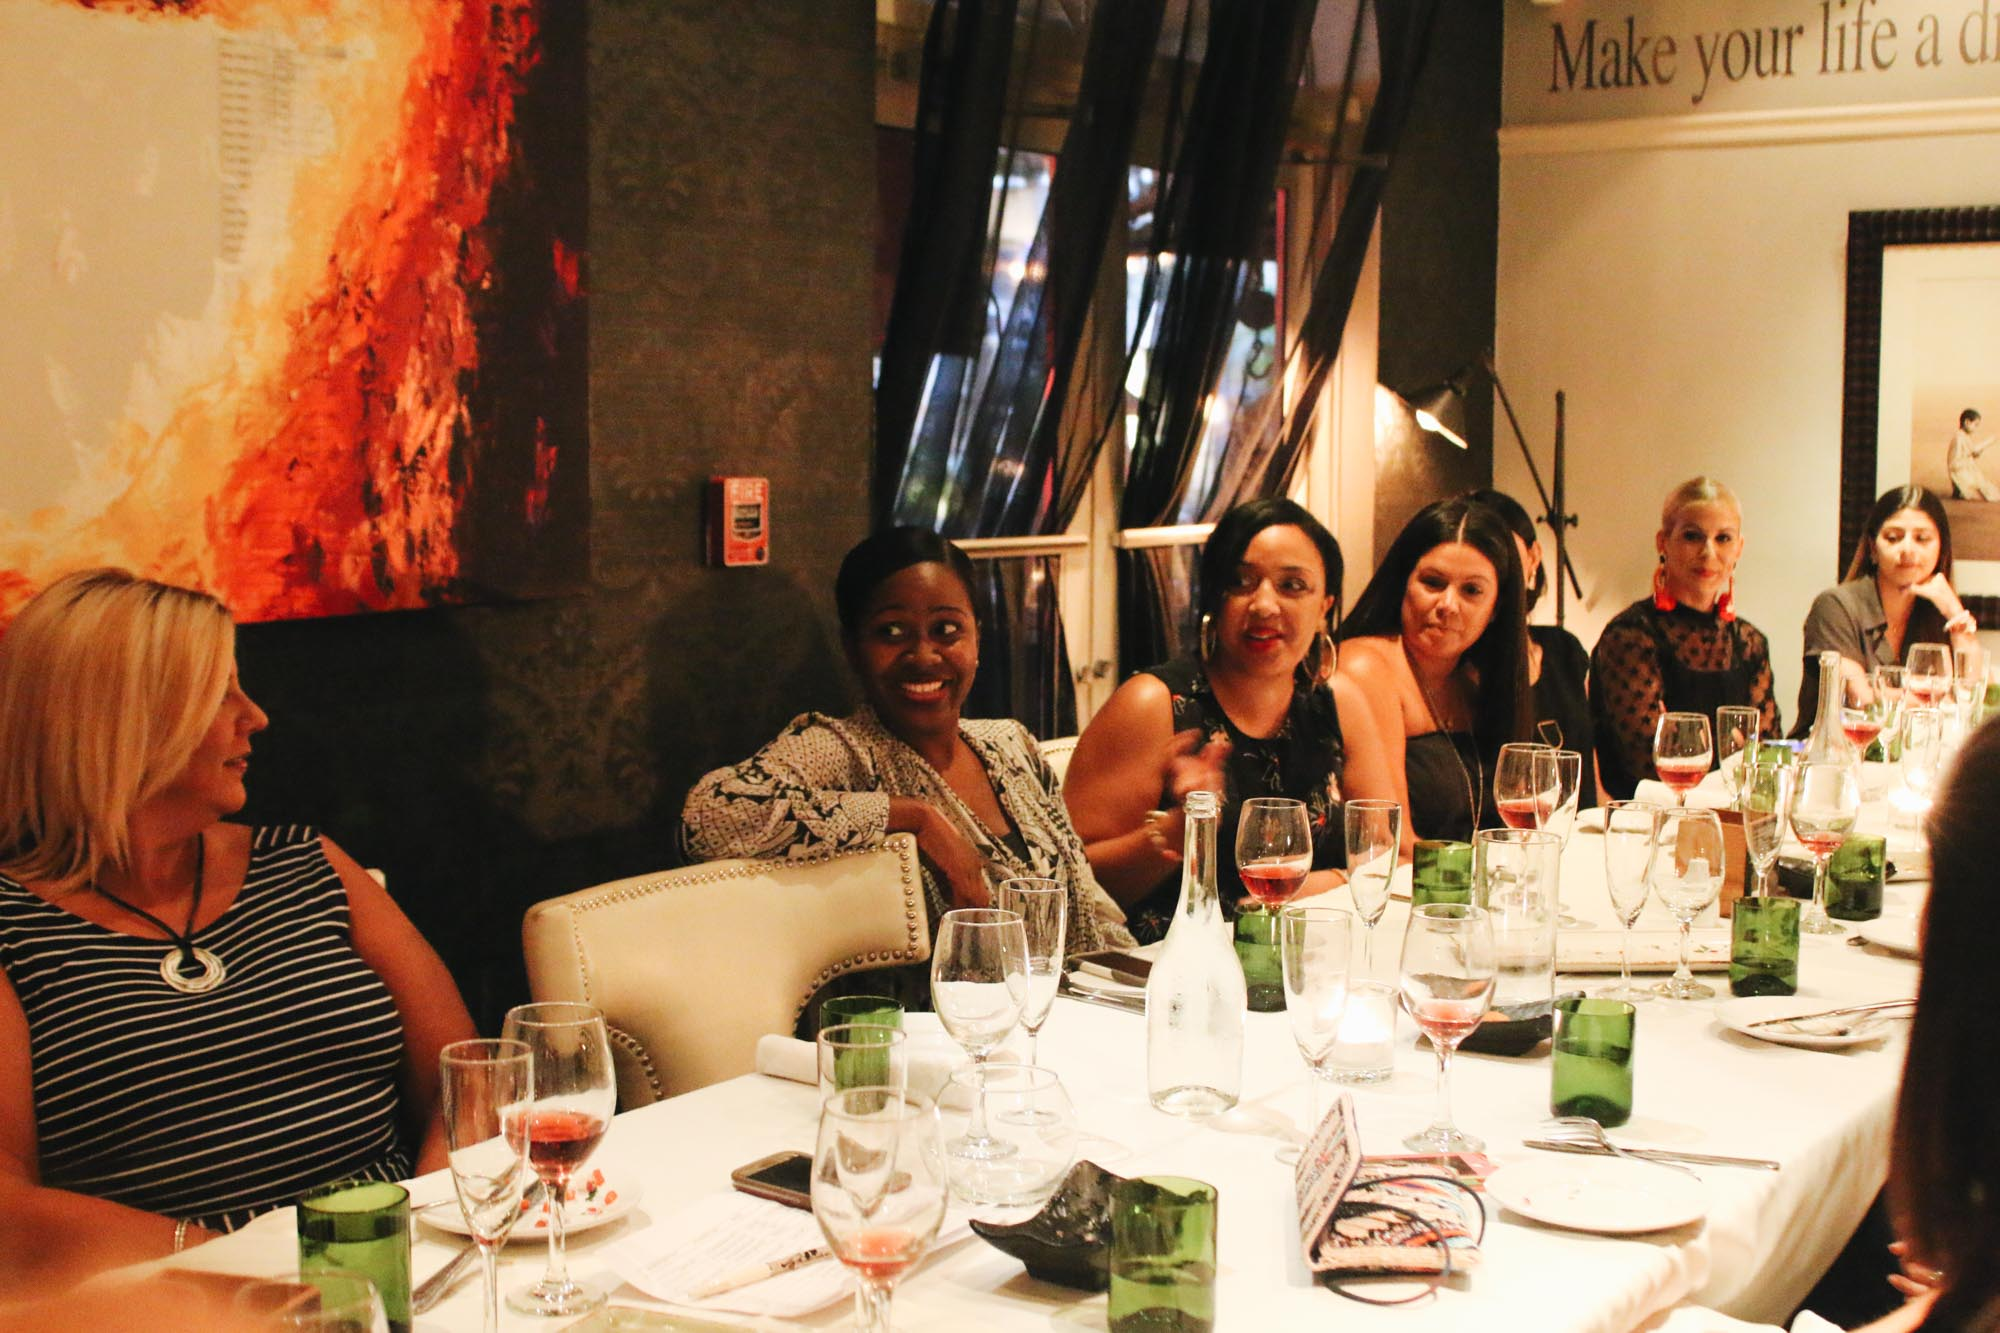 Women Who Wine Uncorked Conversations-Dolores Lolita-Miami Wine Events-Wine Tasting Miami-39.jpg